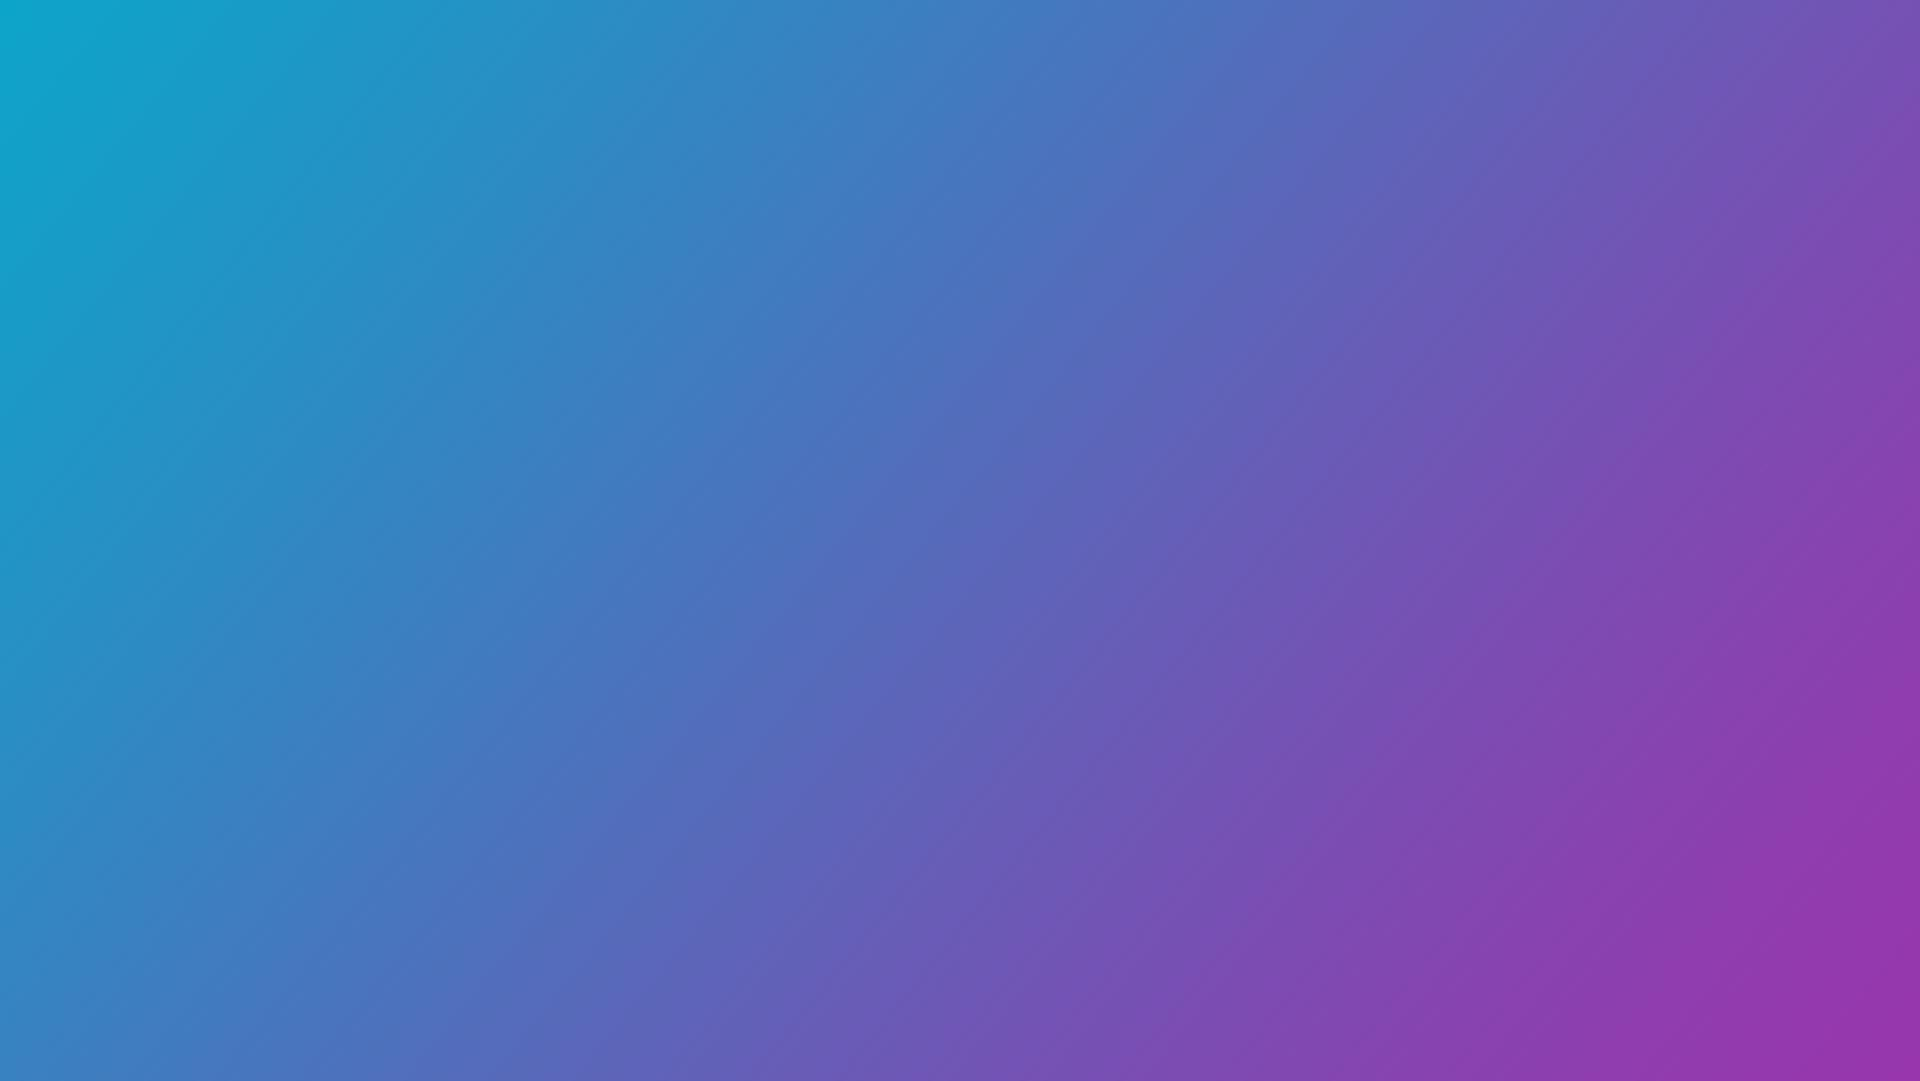 background gradient